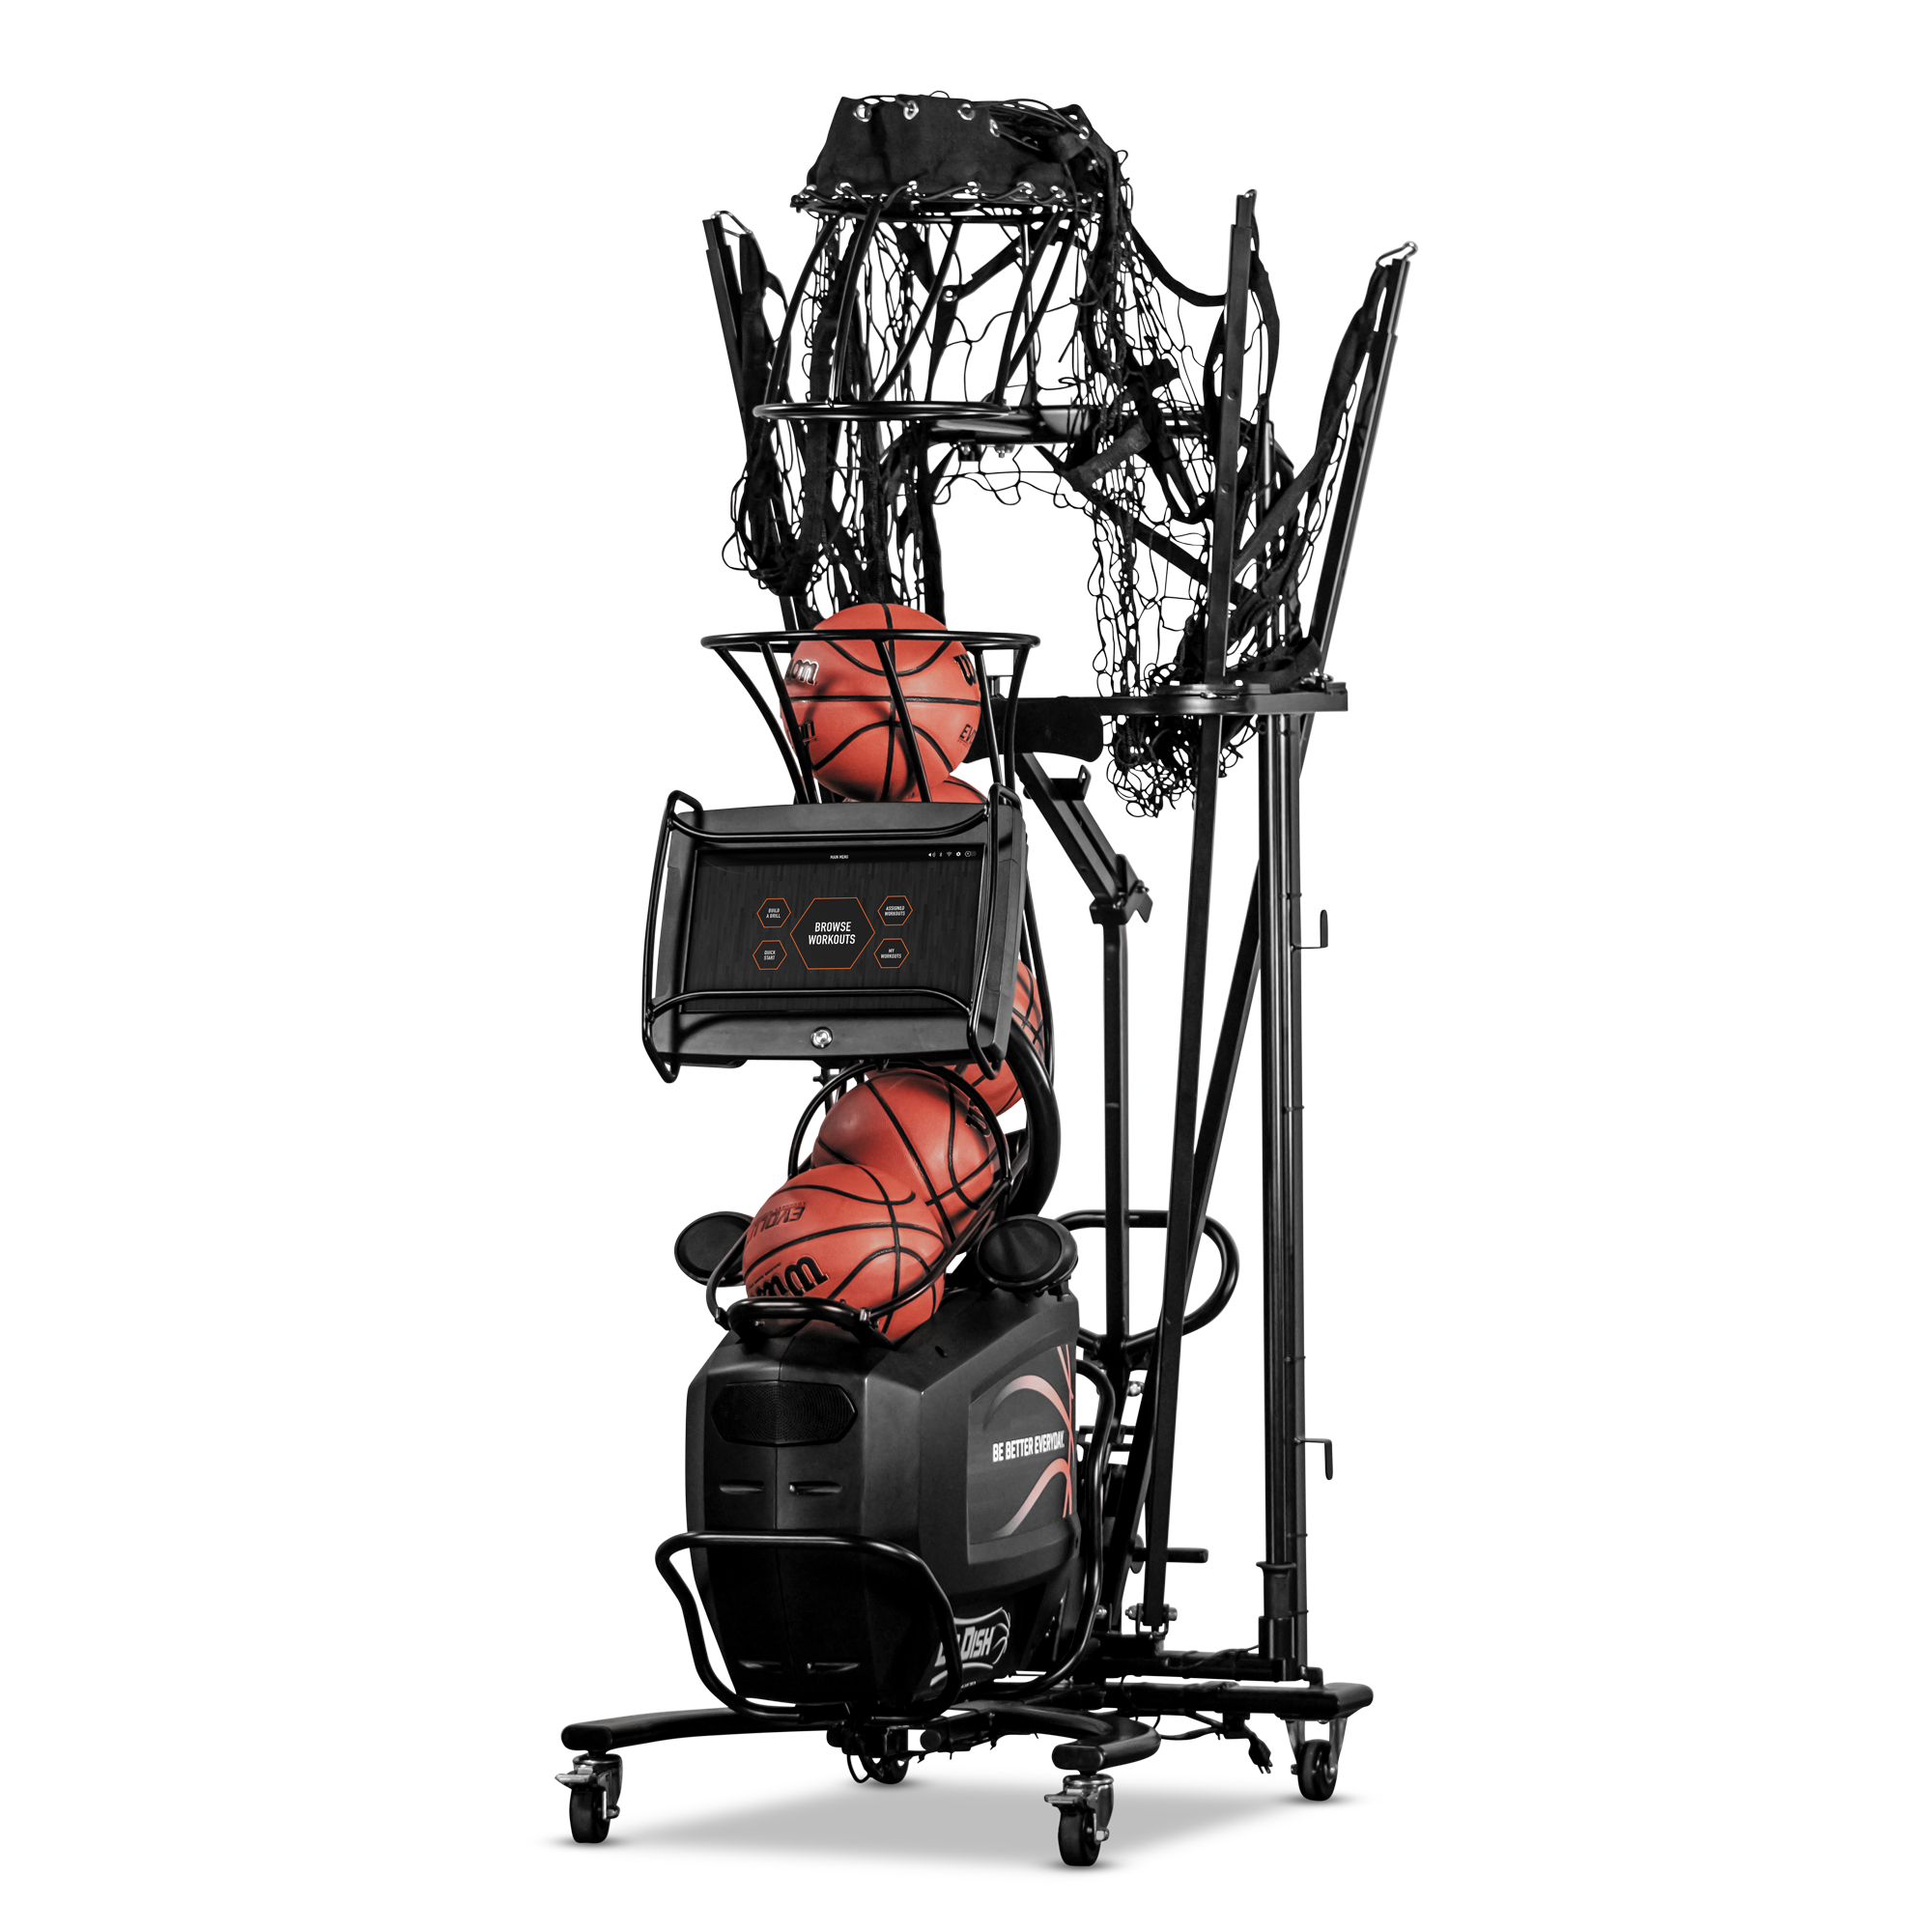 Dr. Dish CT Basketball Rebounding Machine- Storage